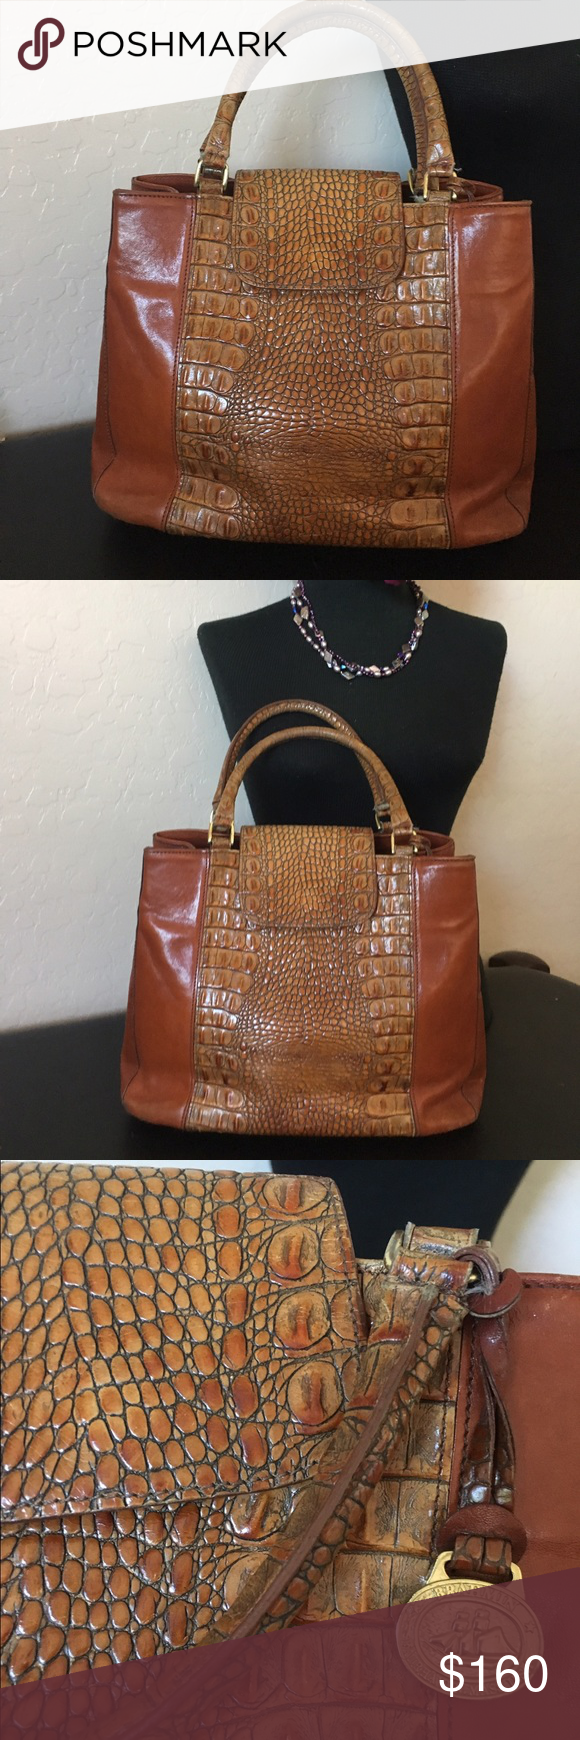 Vintage Brahmin Handbag With Long Crossbody Shoulder Strap Used Condition Some Stain On The Inside Please Note